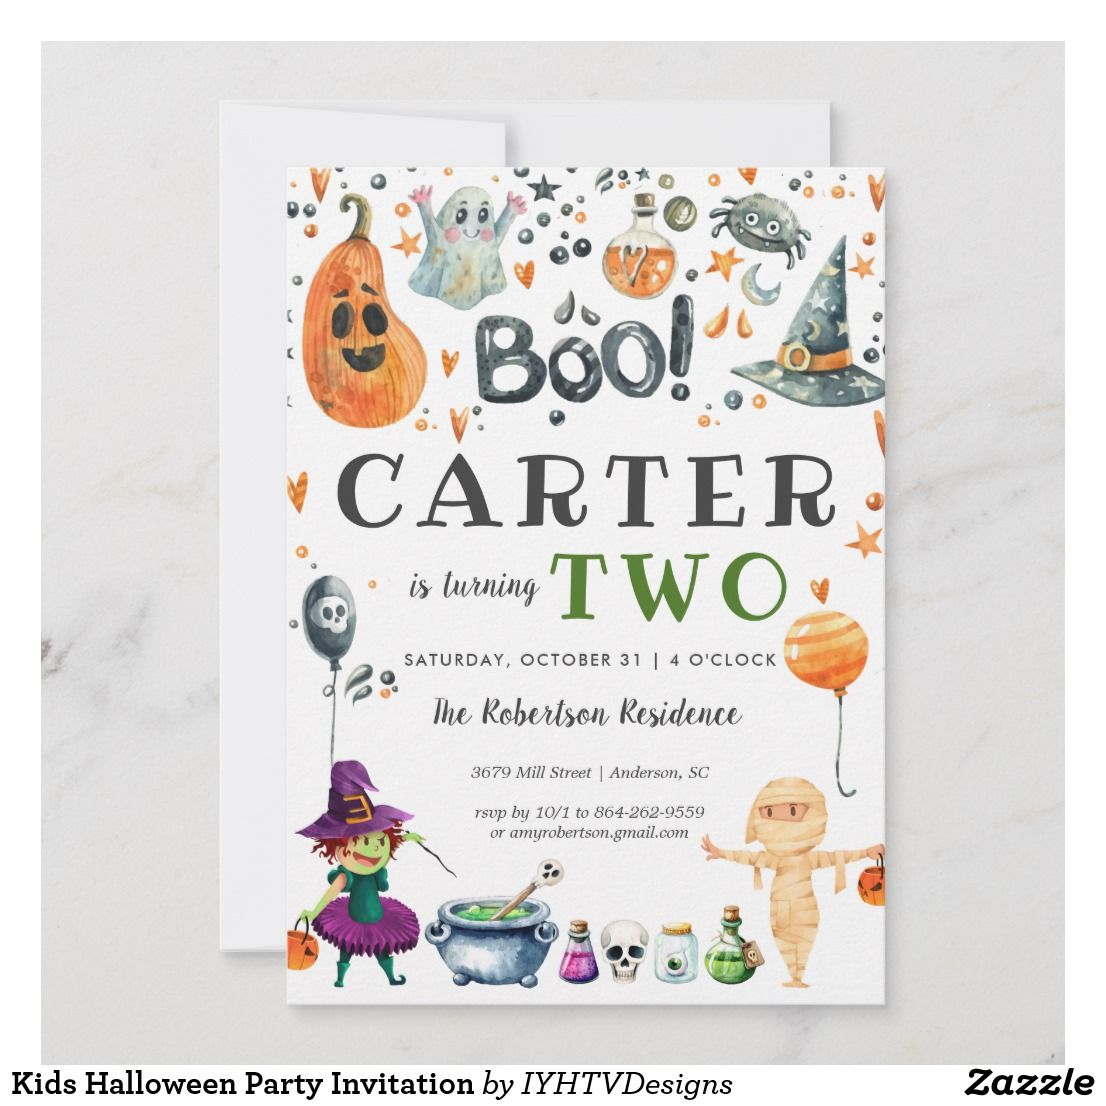 Kids Halloween Party Invitation Zazzle Com In 2019 Halloween